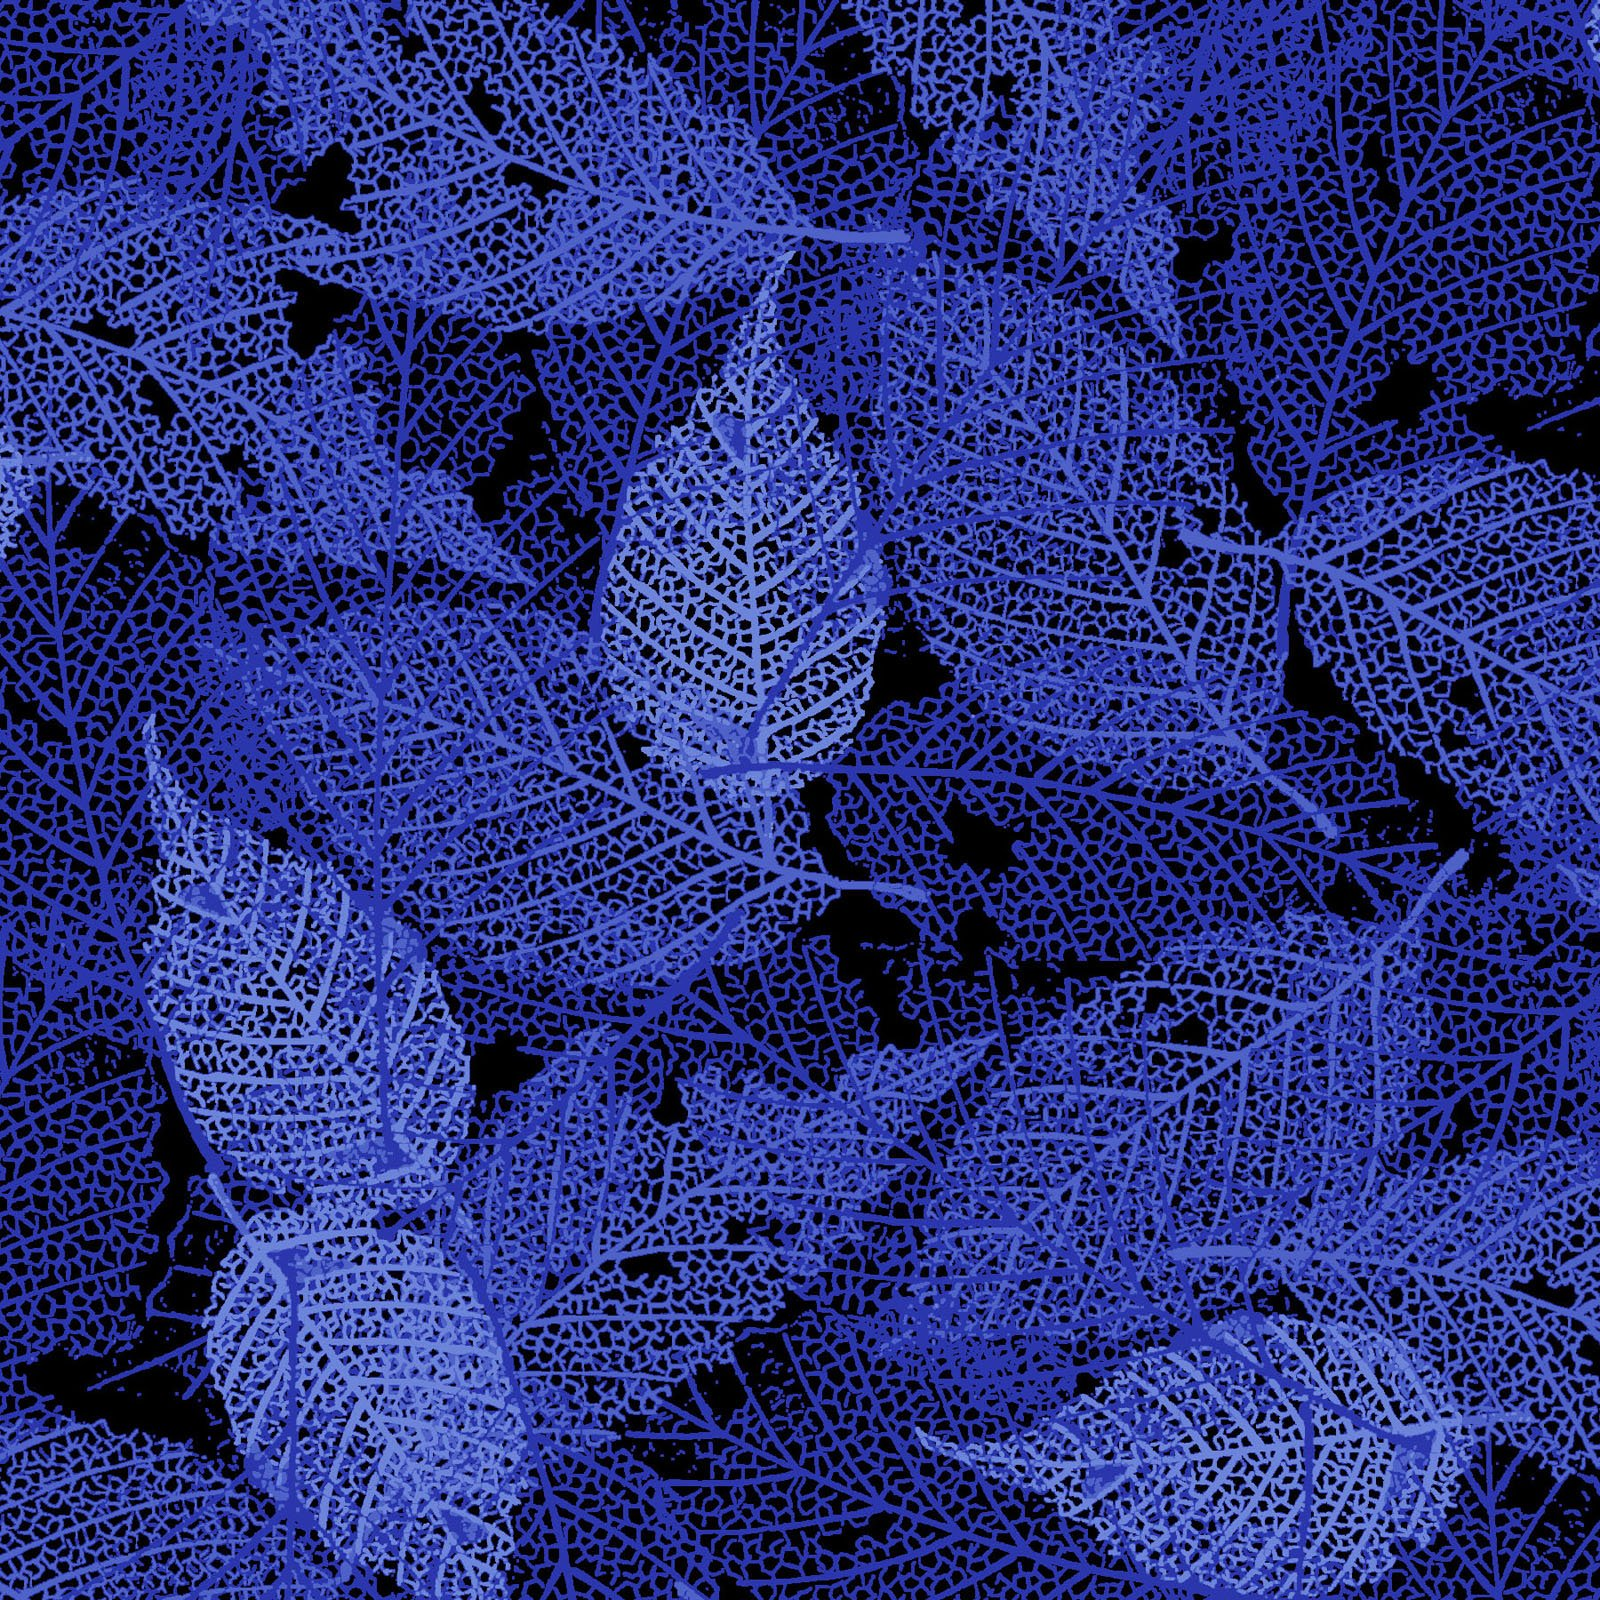 FOLI-4478 BB - FOLIAGE BY P&B BOUTIQUE TEXTURE LEAVES DK BLUE - ARRIVING IN MAY 2021